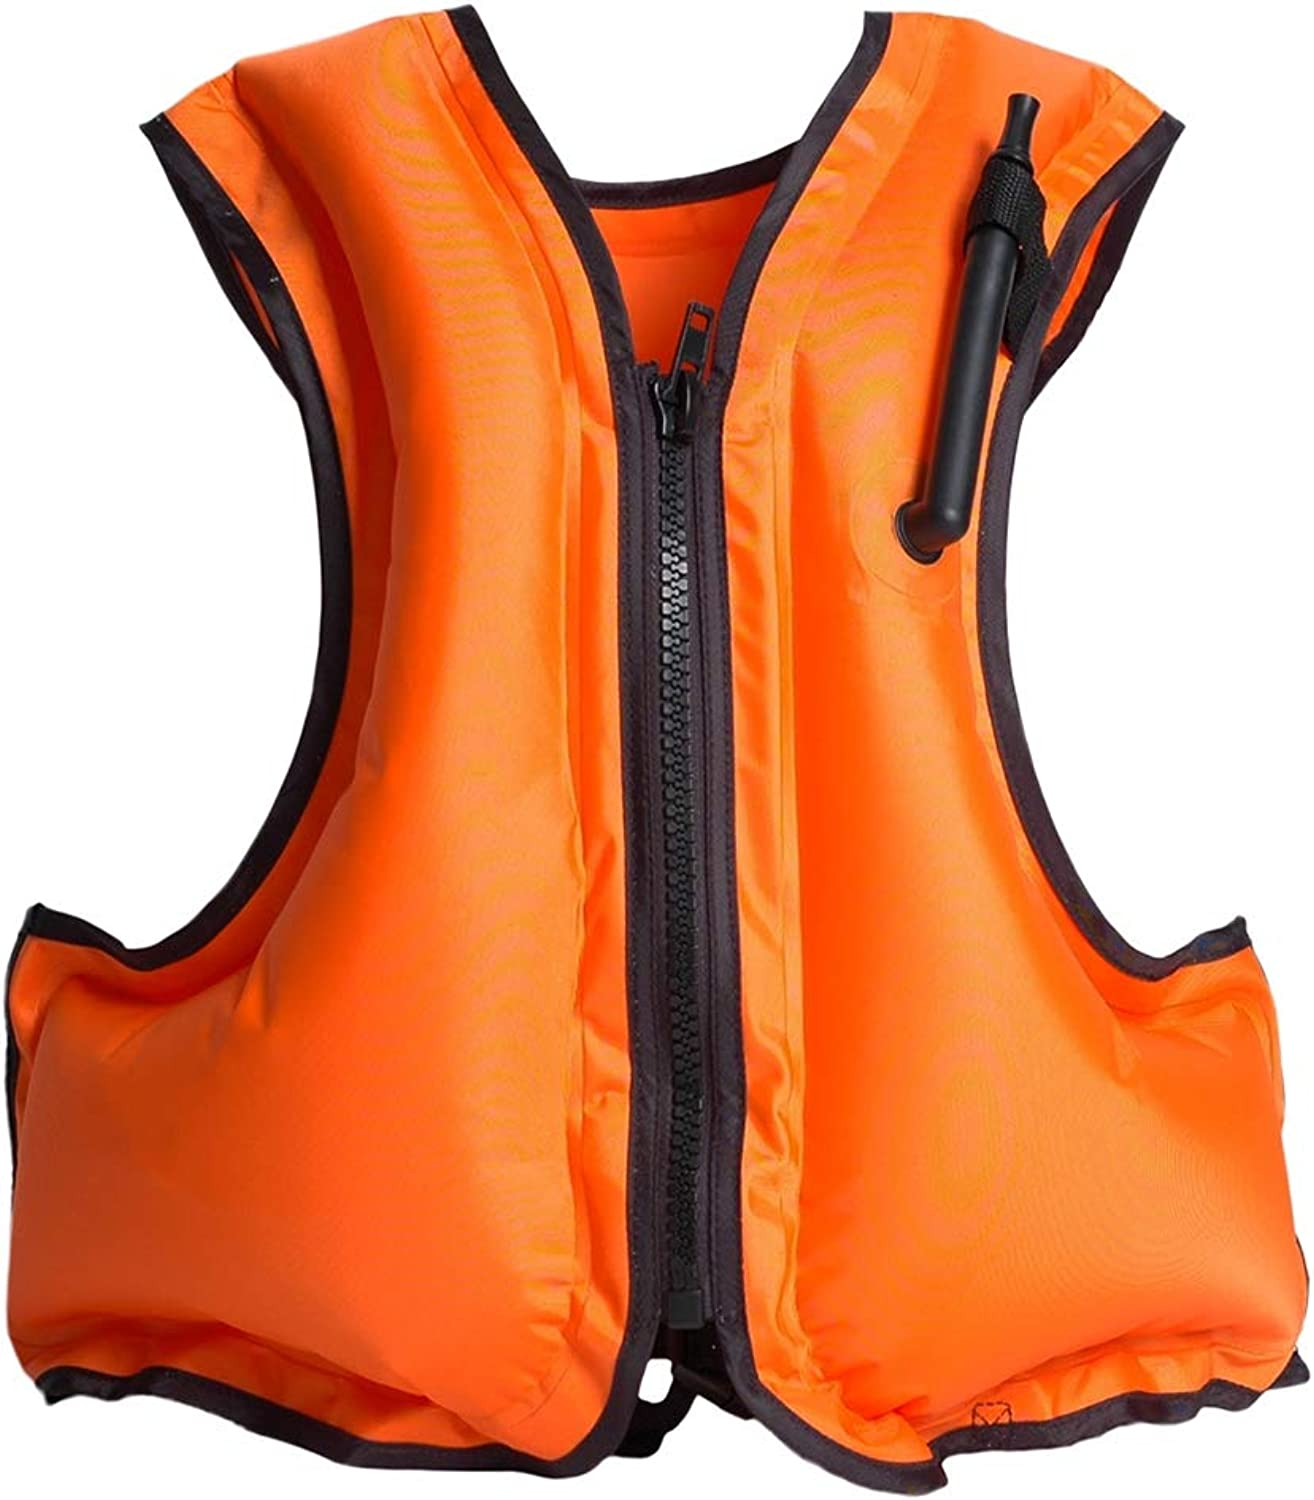 Life Jacket Adult Inflatable Swim Vest Life Jacket Snorkeling Floating Swimming Surfing Water Sports Life Saving Jacket,orange